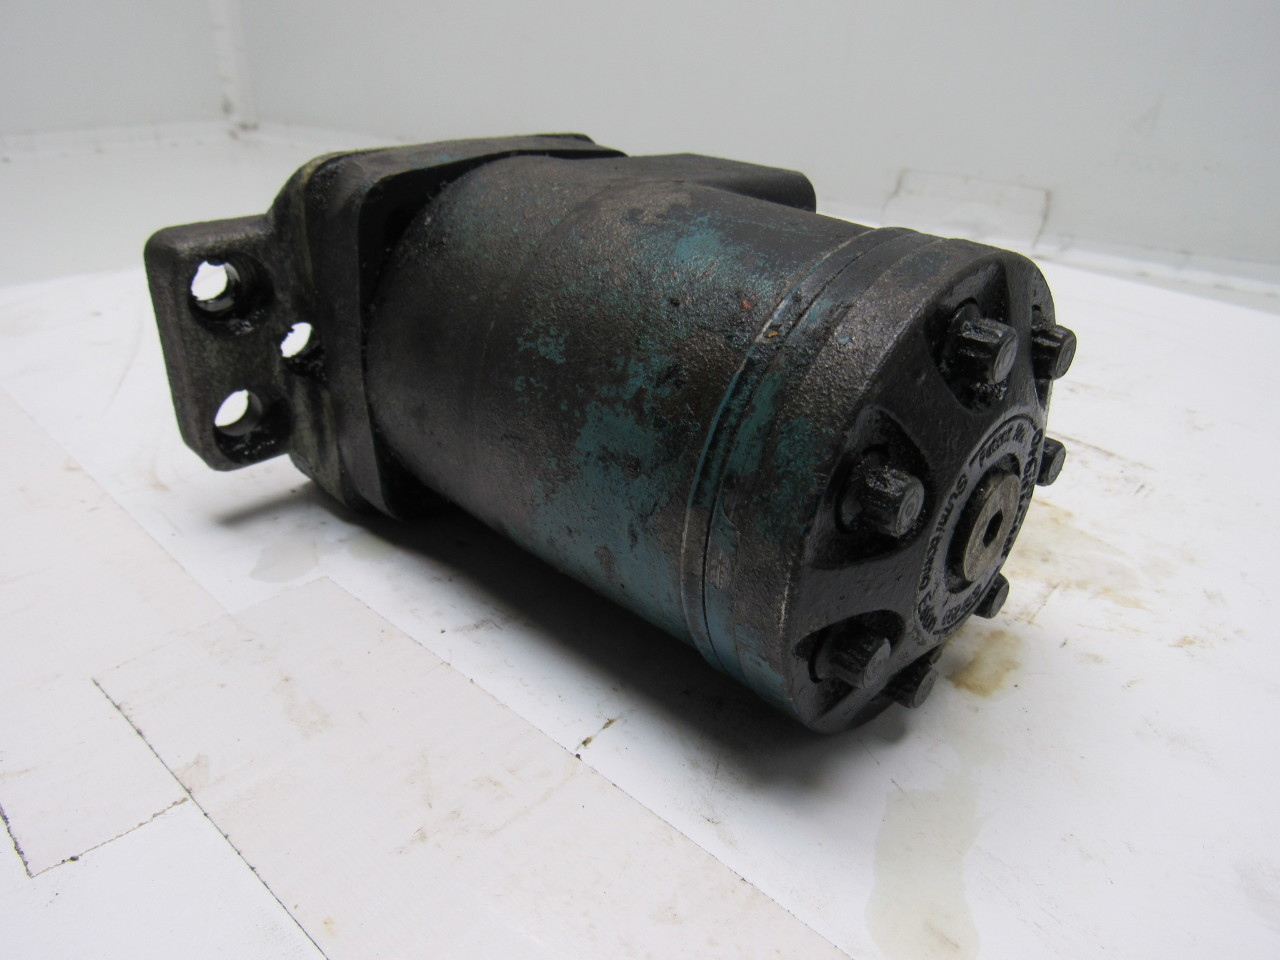 Sumitomo Eaton H 050bc4 Orbit Motor Geroler Low Speed High Torque 1 Shaft Ebay